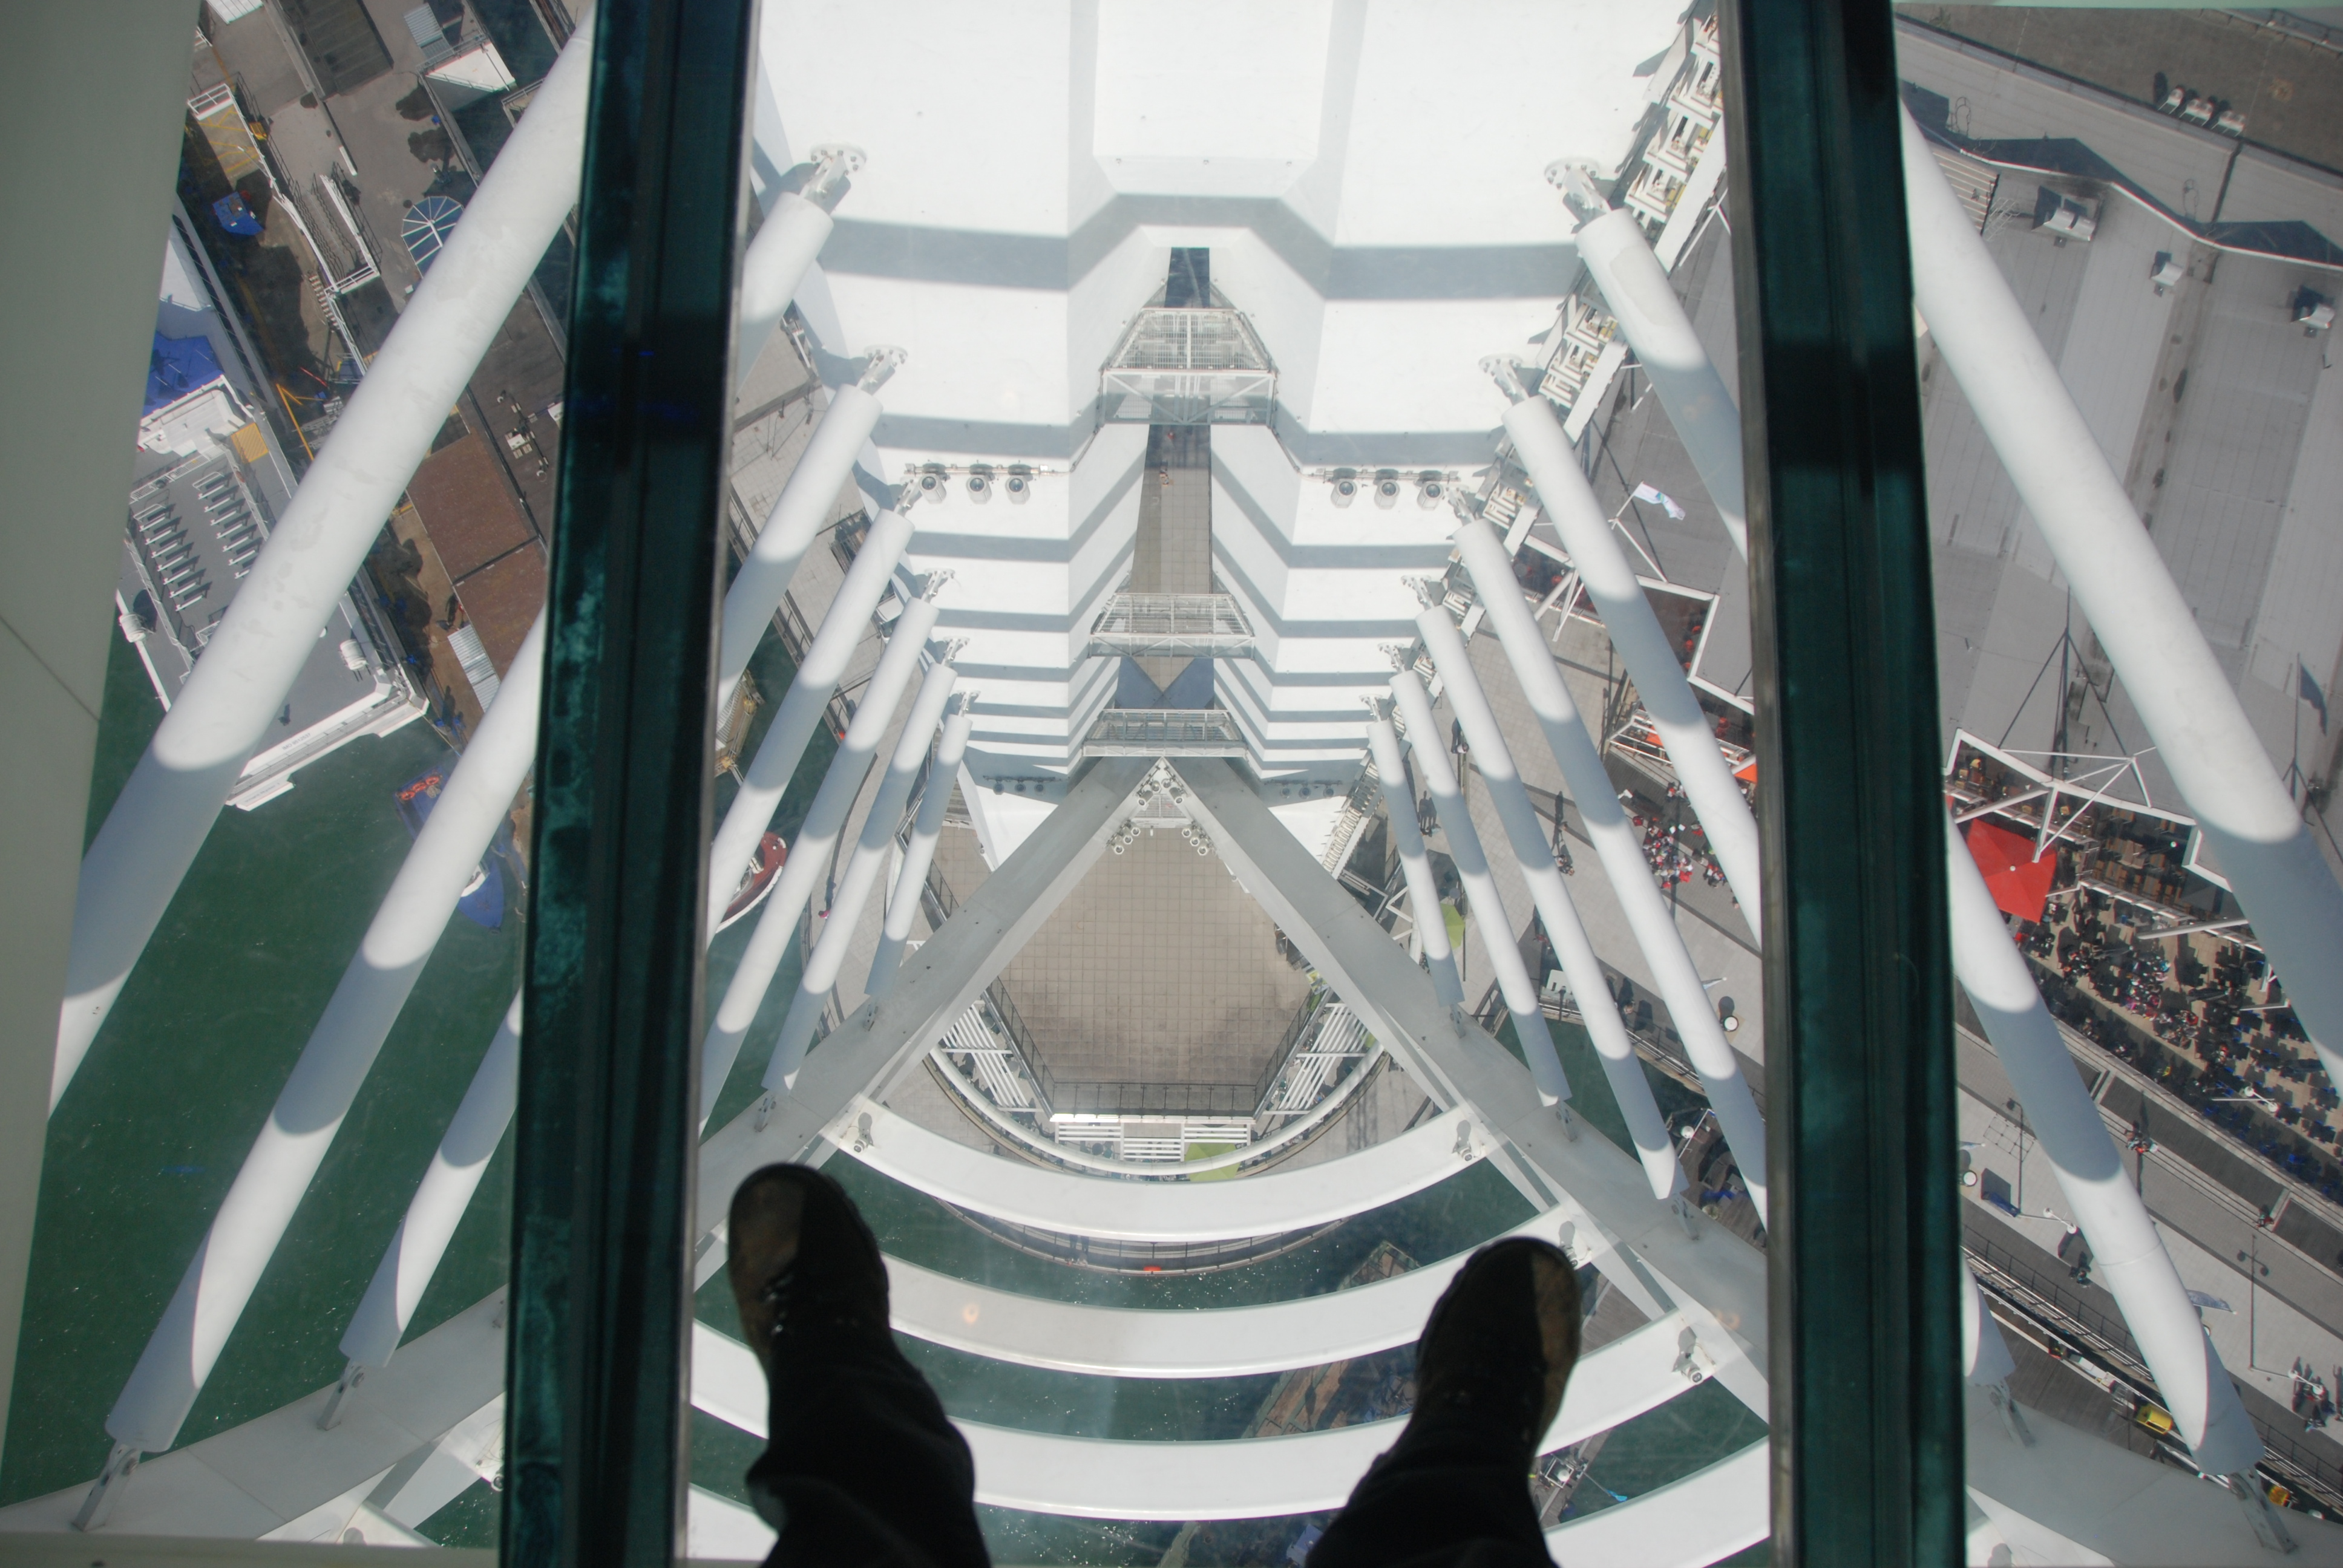 File:Spinnaker Tower - Looking down through the glass